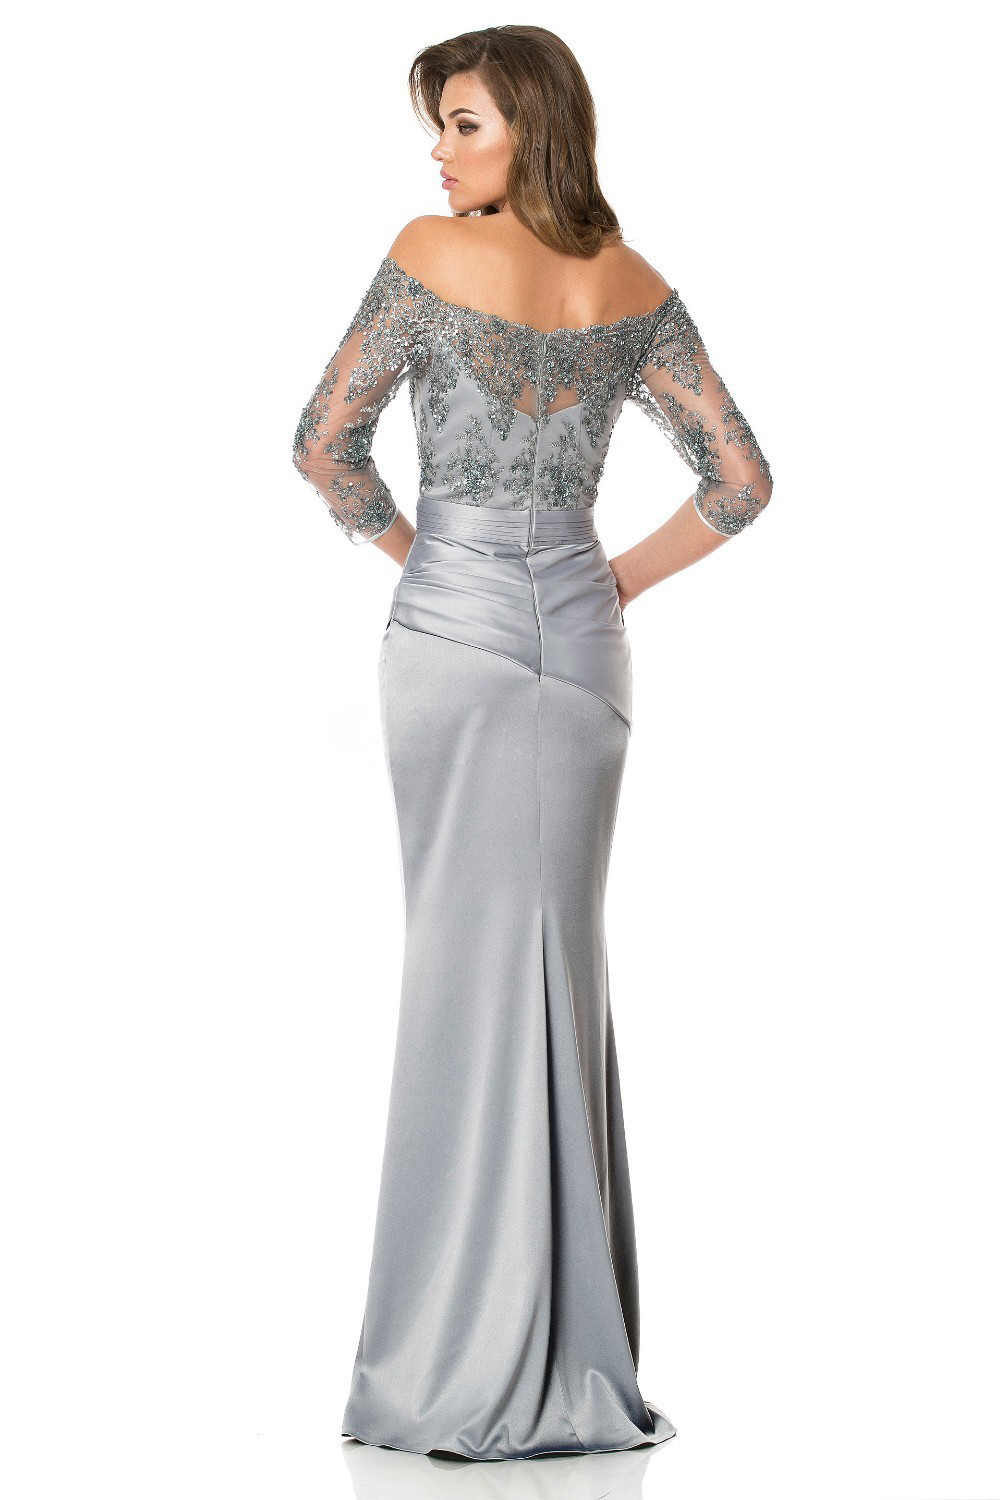 2017 Long Sleeves Gorgeous Sequins Bead Off Shoulder Mother Of The Bride Dresses Lace Floor Length Grey Evening Dress In